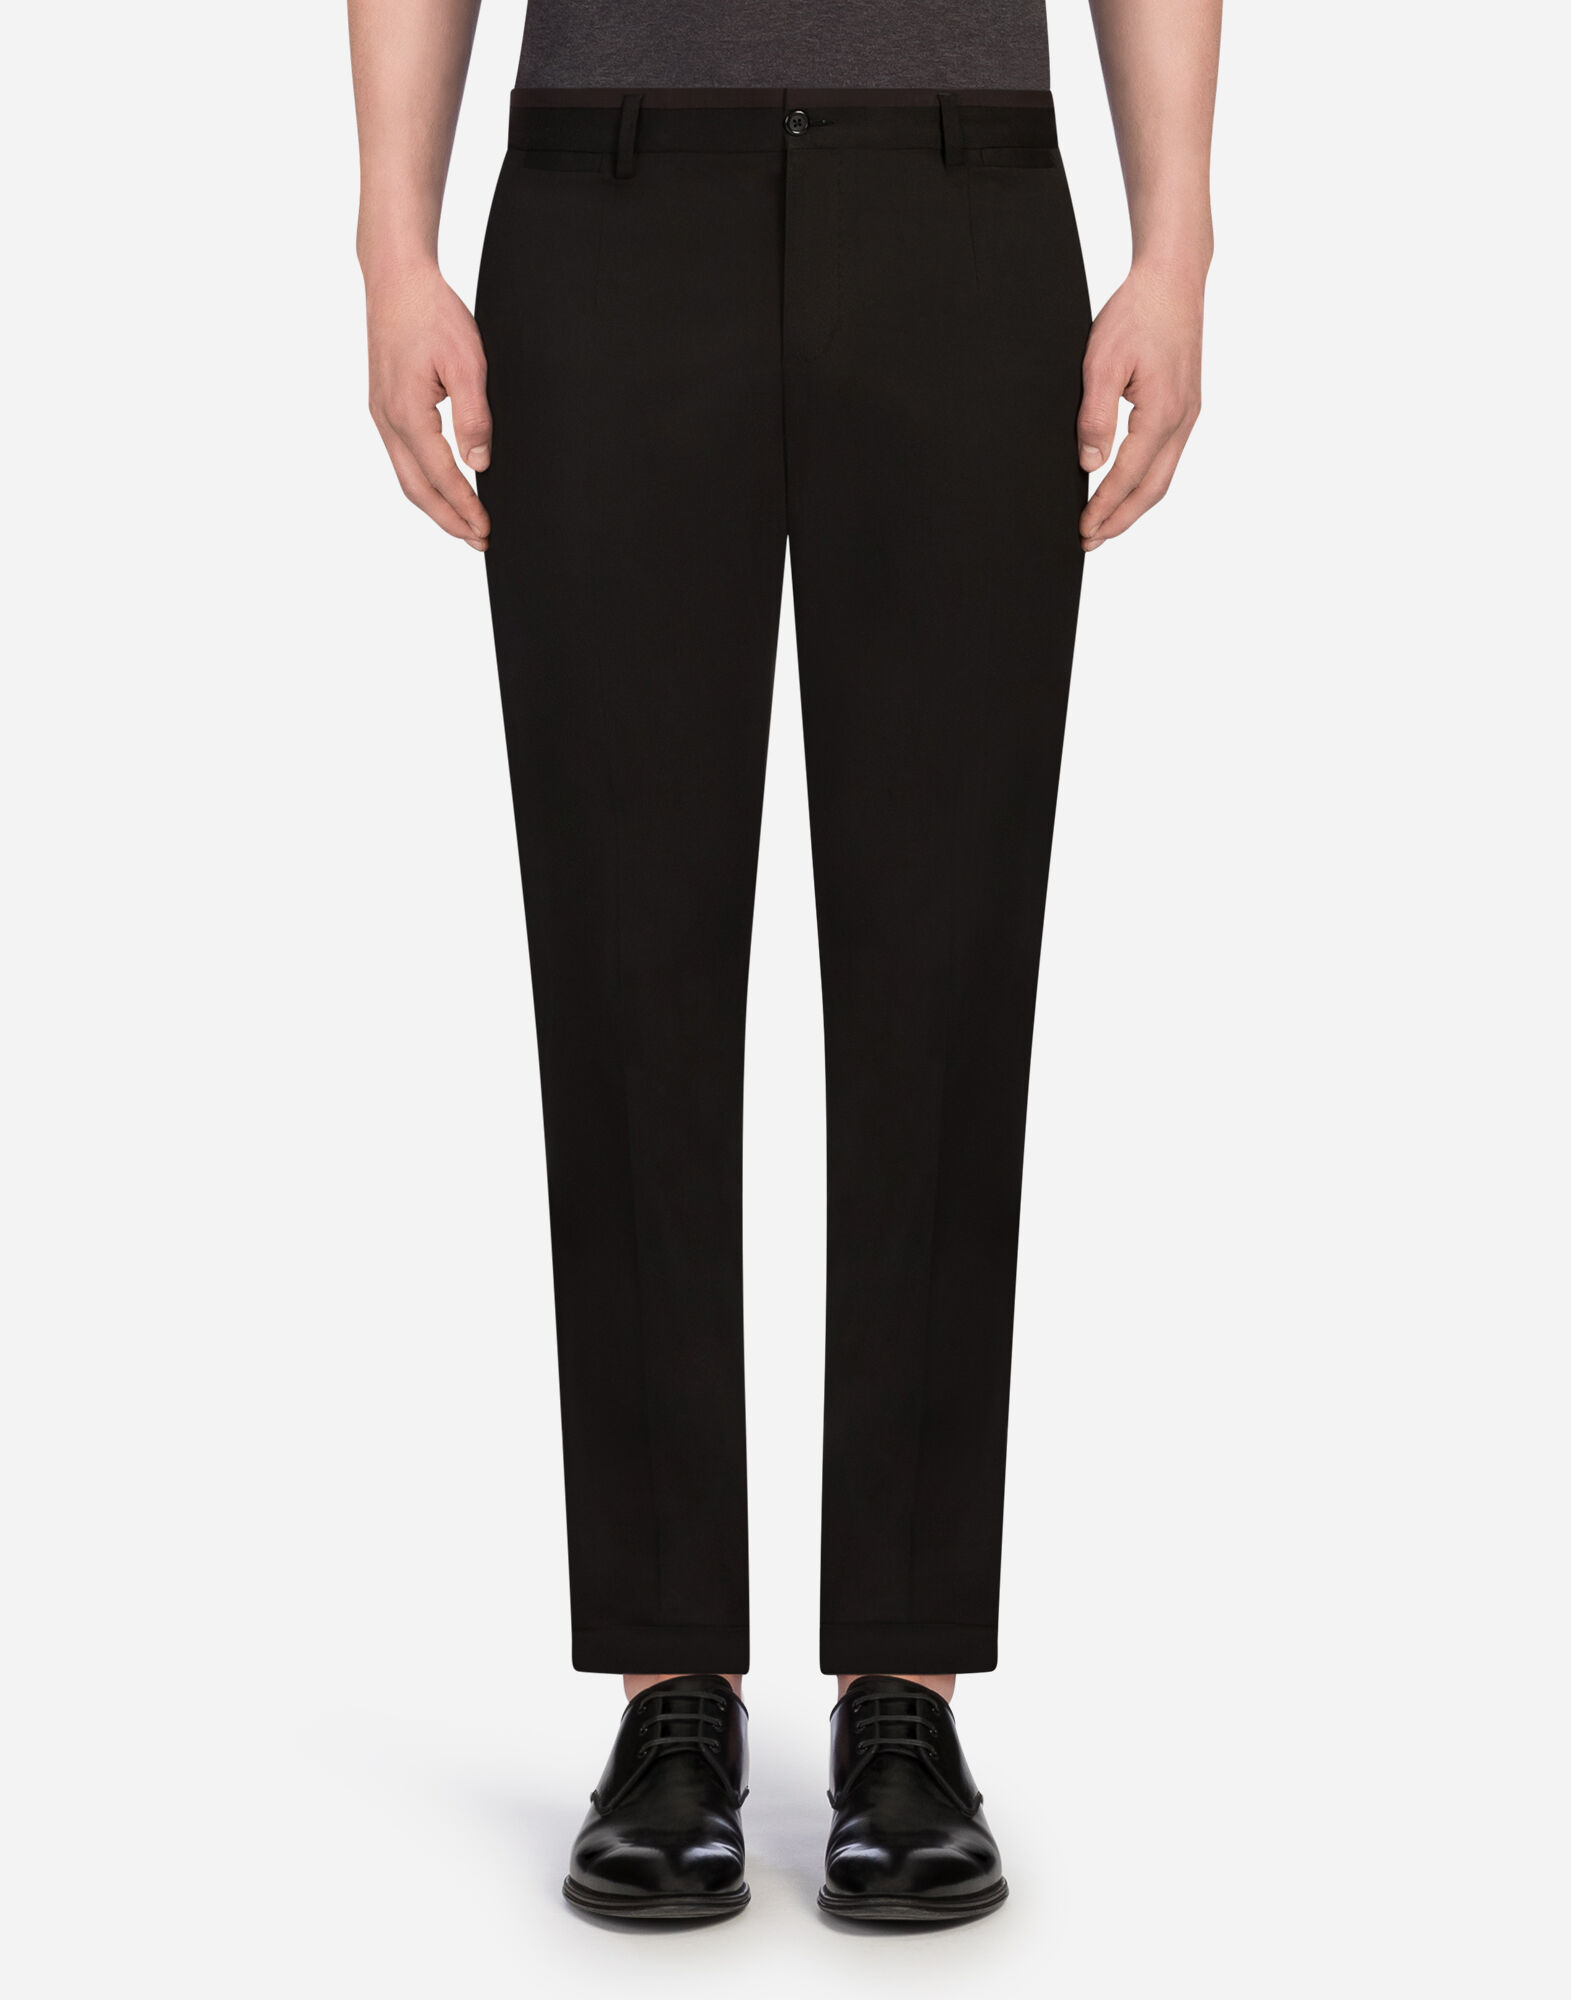 SPORTY PANTS IN COTTON from DOLCE & GABBANA